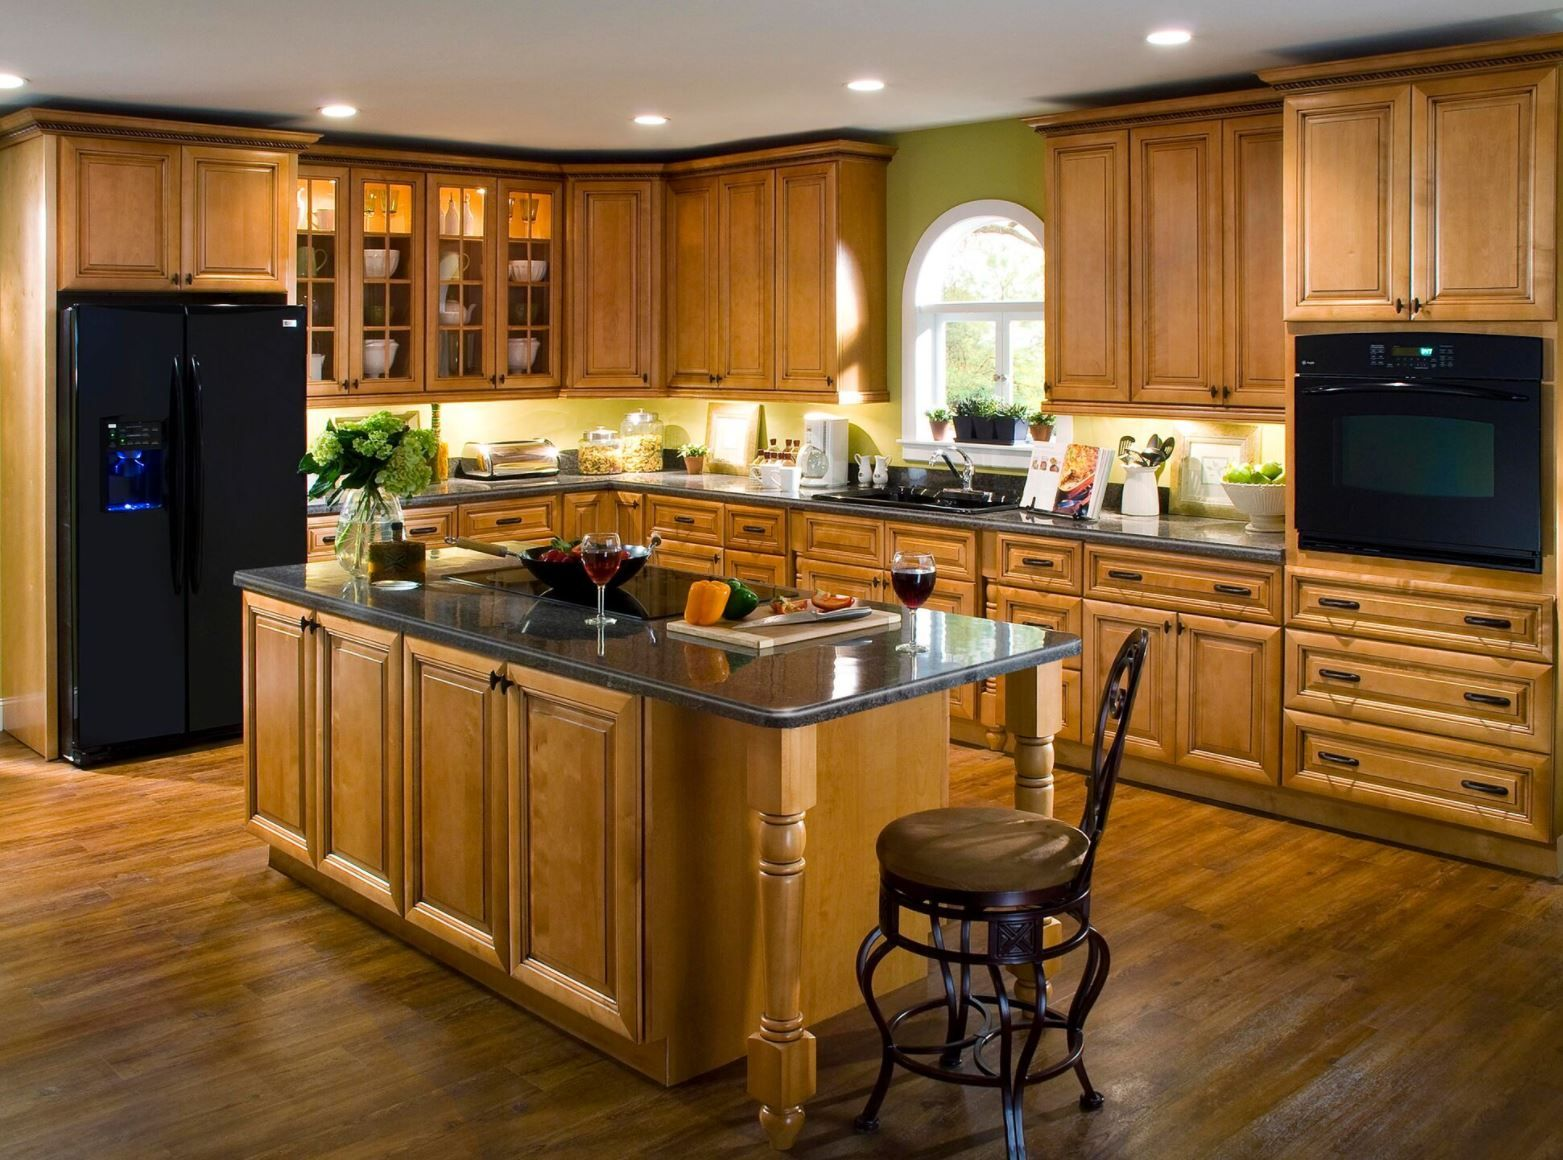 Create Customize Your Kitchen Cabinets Lewiston Cabinet Accessories In Toffee Glaze The Home Depot